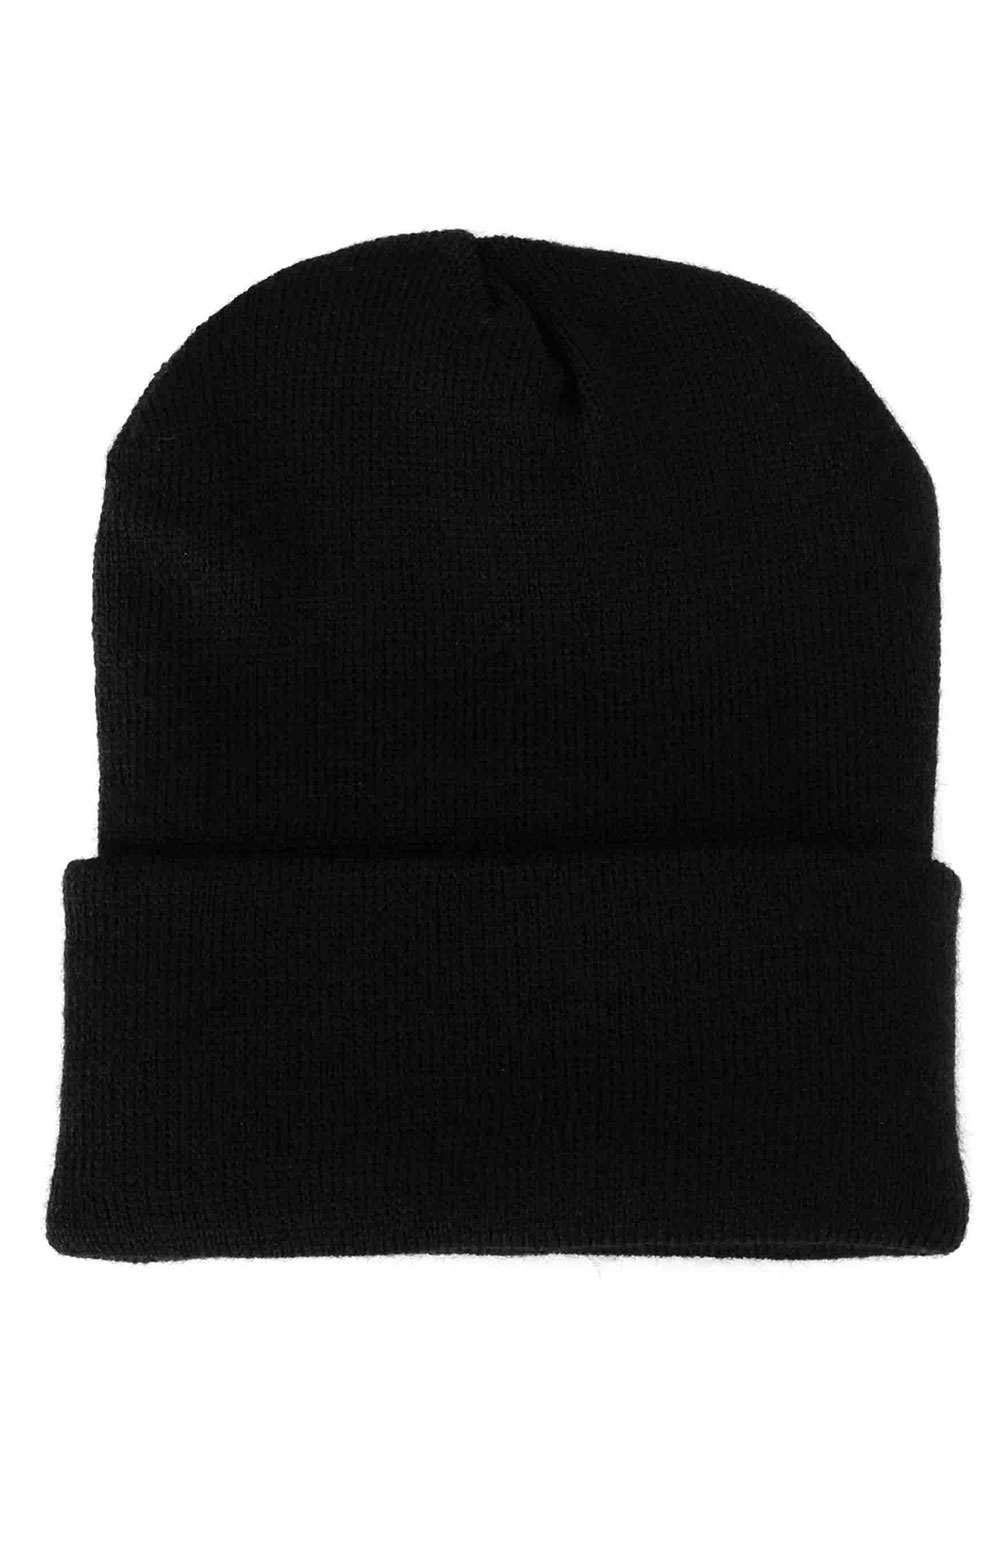 Akomplice Label Beanie - Black  2